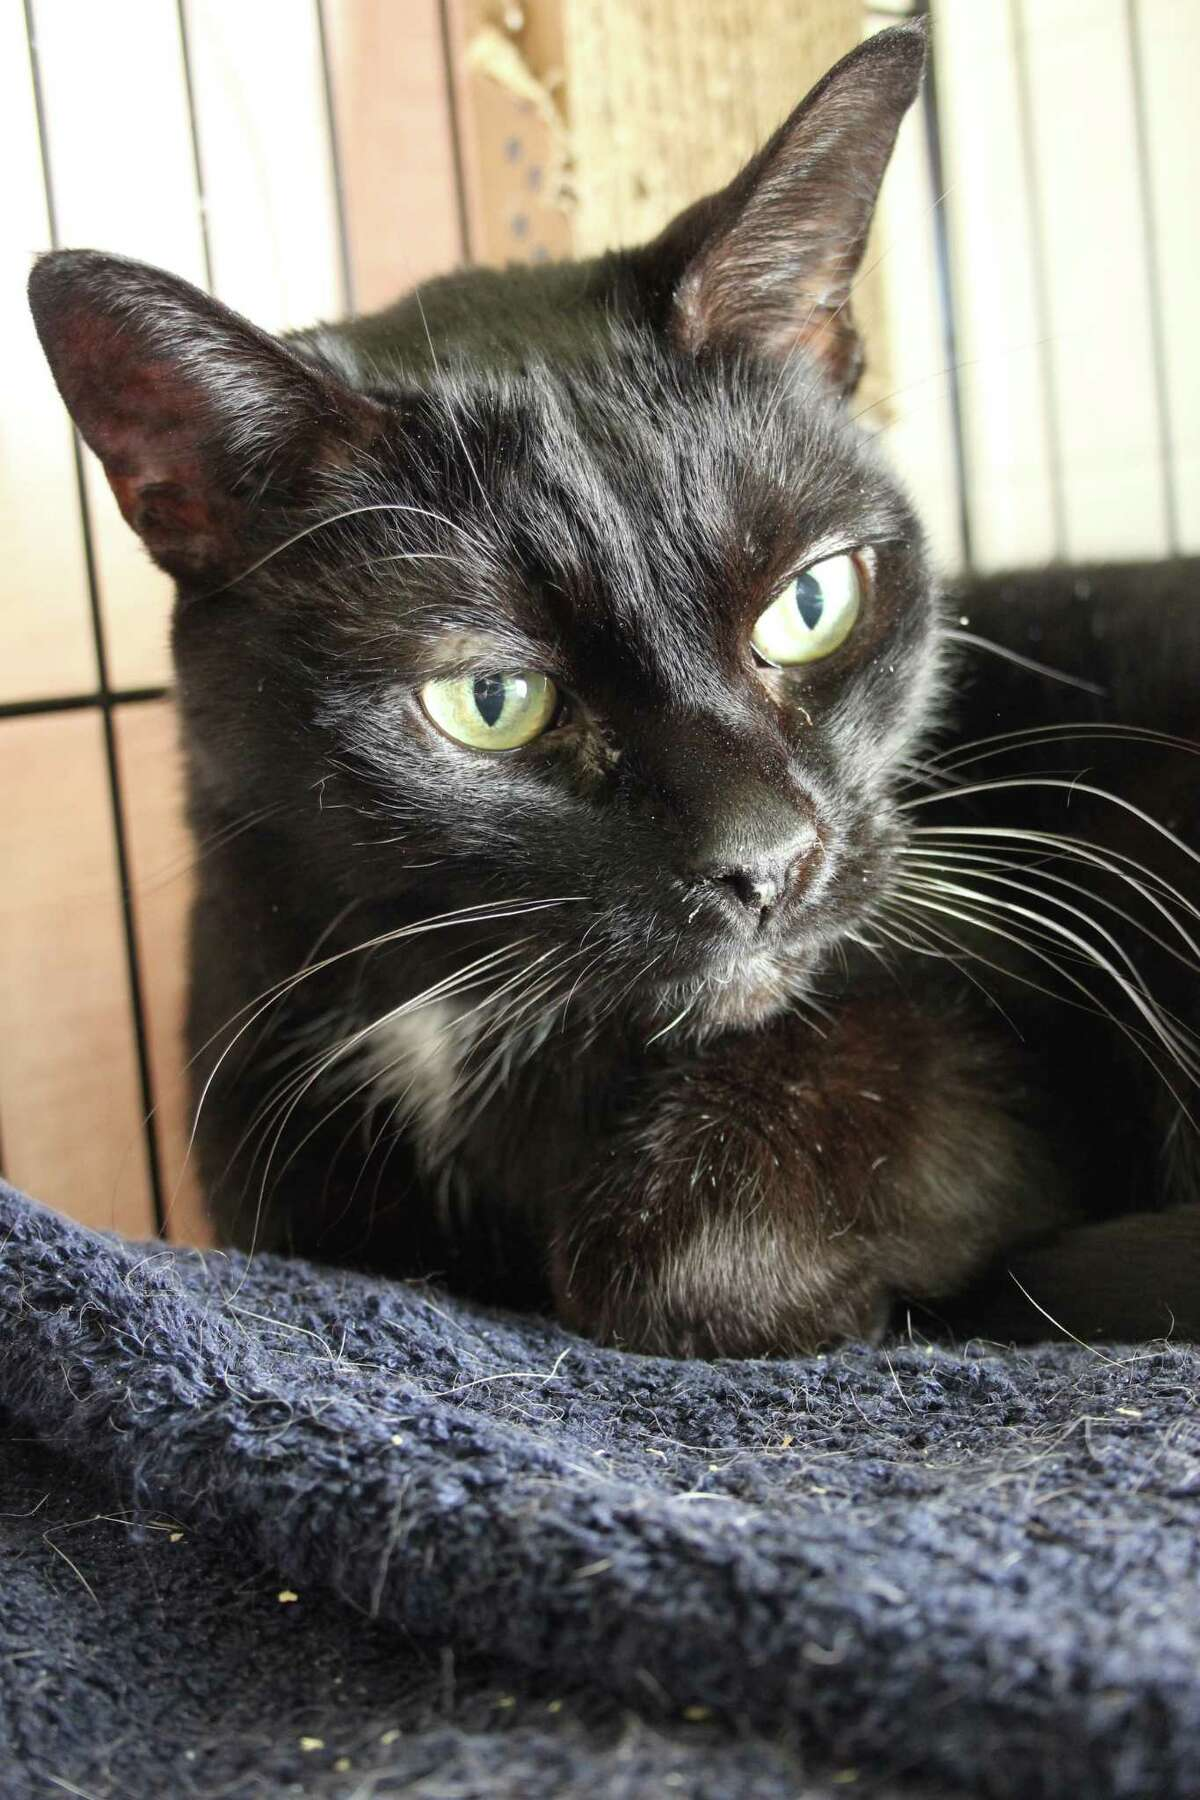 Keady, a new arrival, is a young senior ready to find her new and last